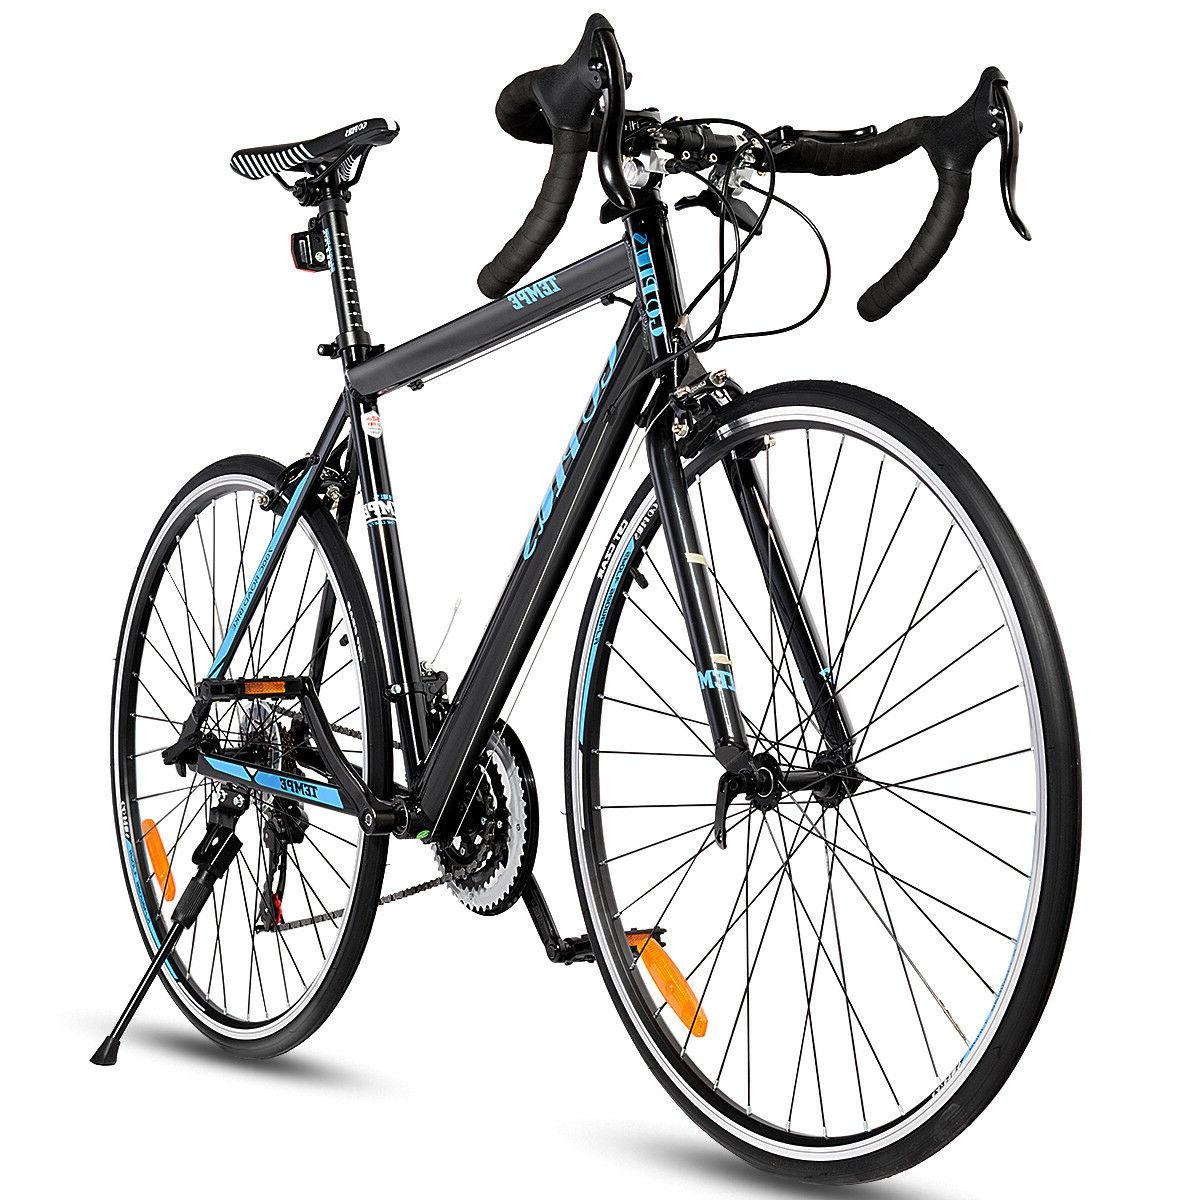 Shimano 700C Road/Commuter Bicycle 21 Speed Release